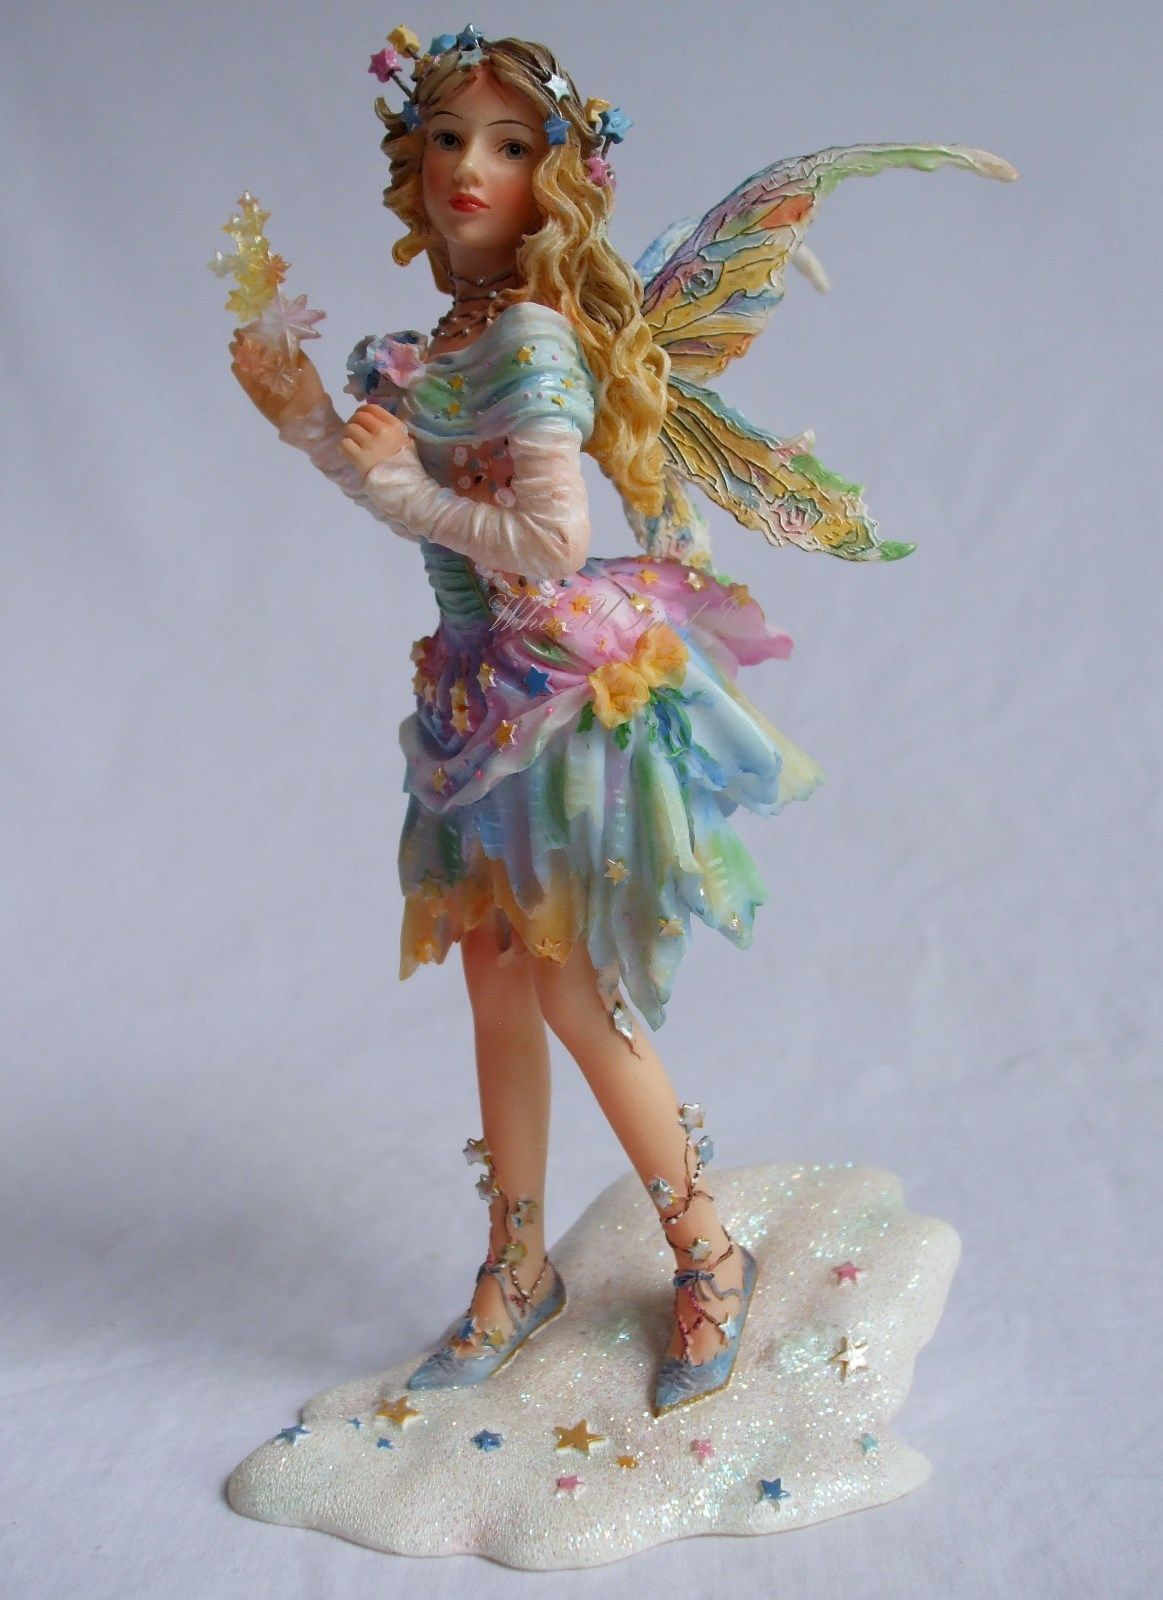 Faerie Statues Christine Haworth S Follow Your Dreams Limited Edition Fairy New